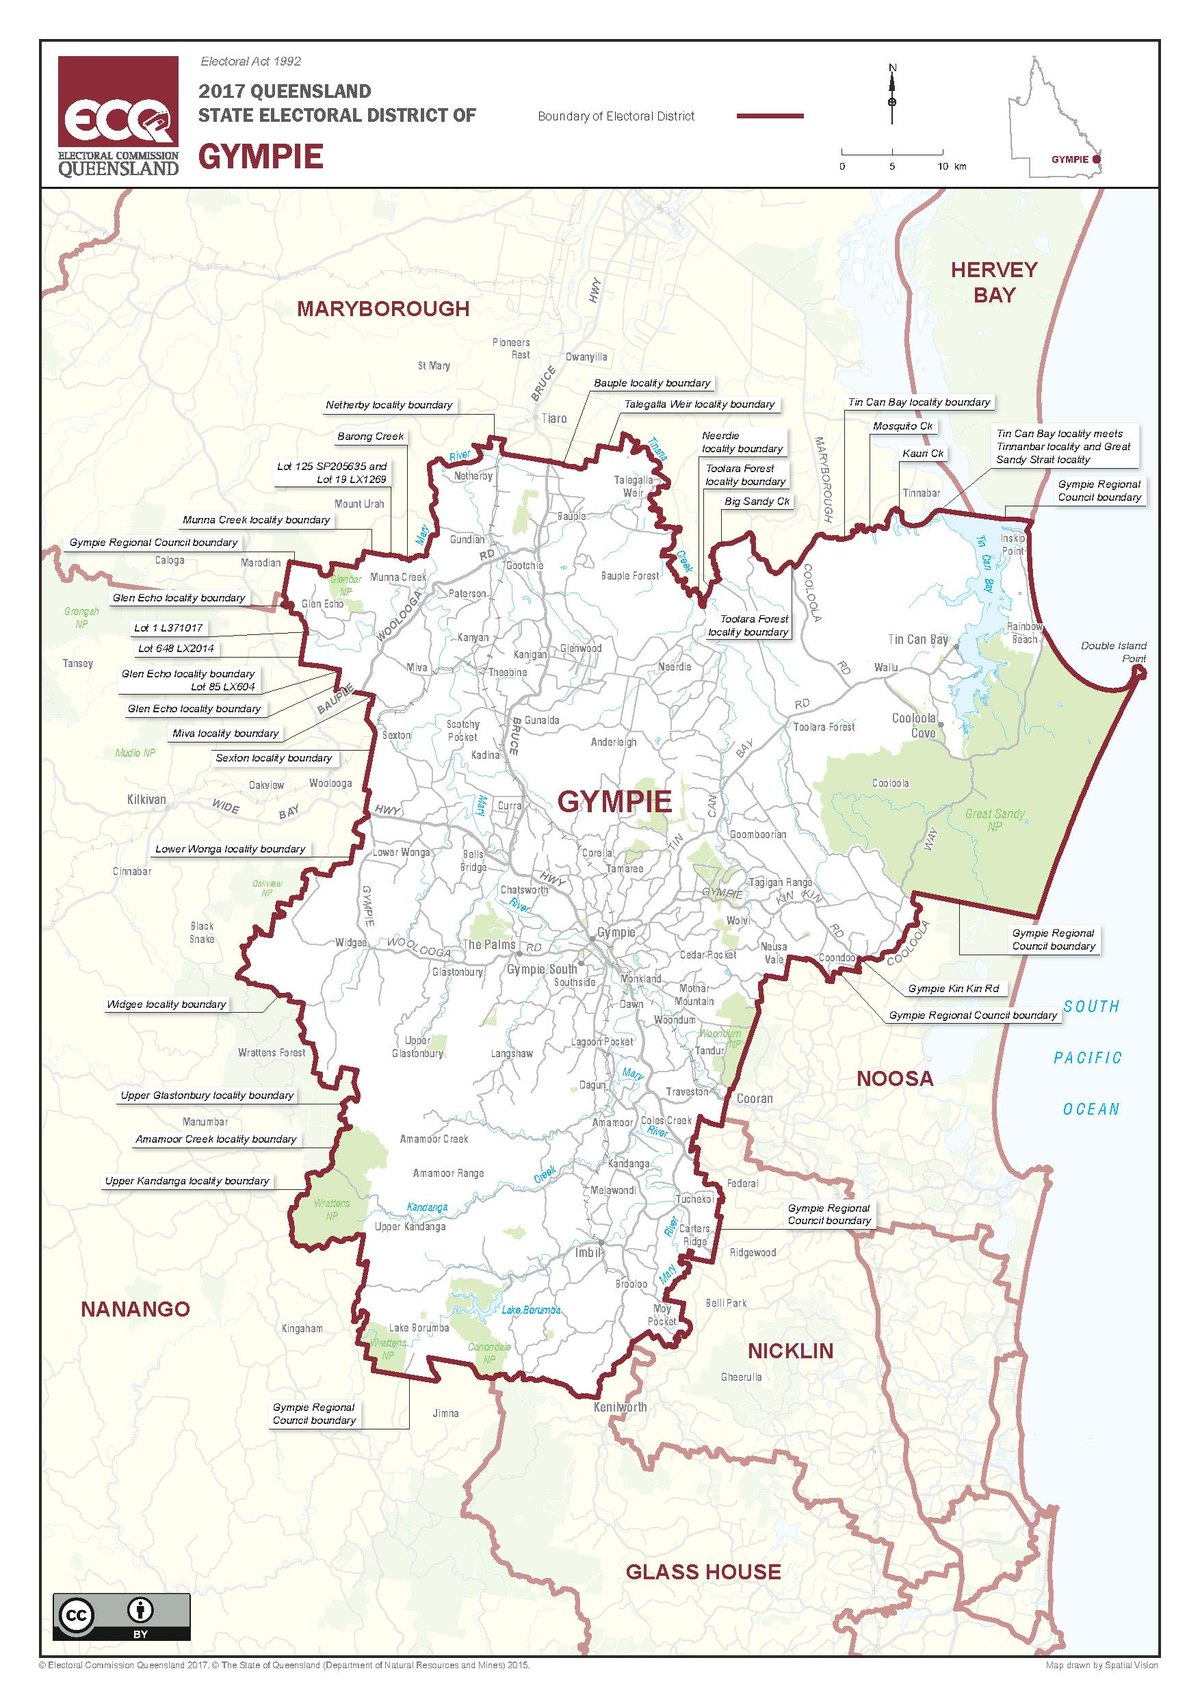 Electoral District Of Gympie Wikipedia